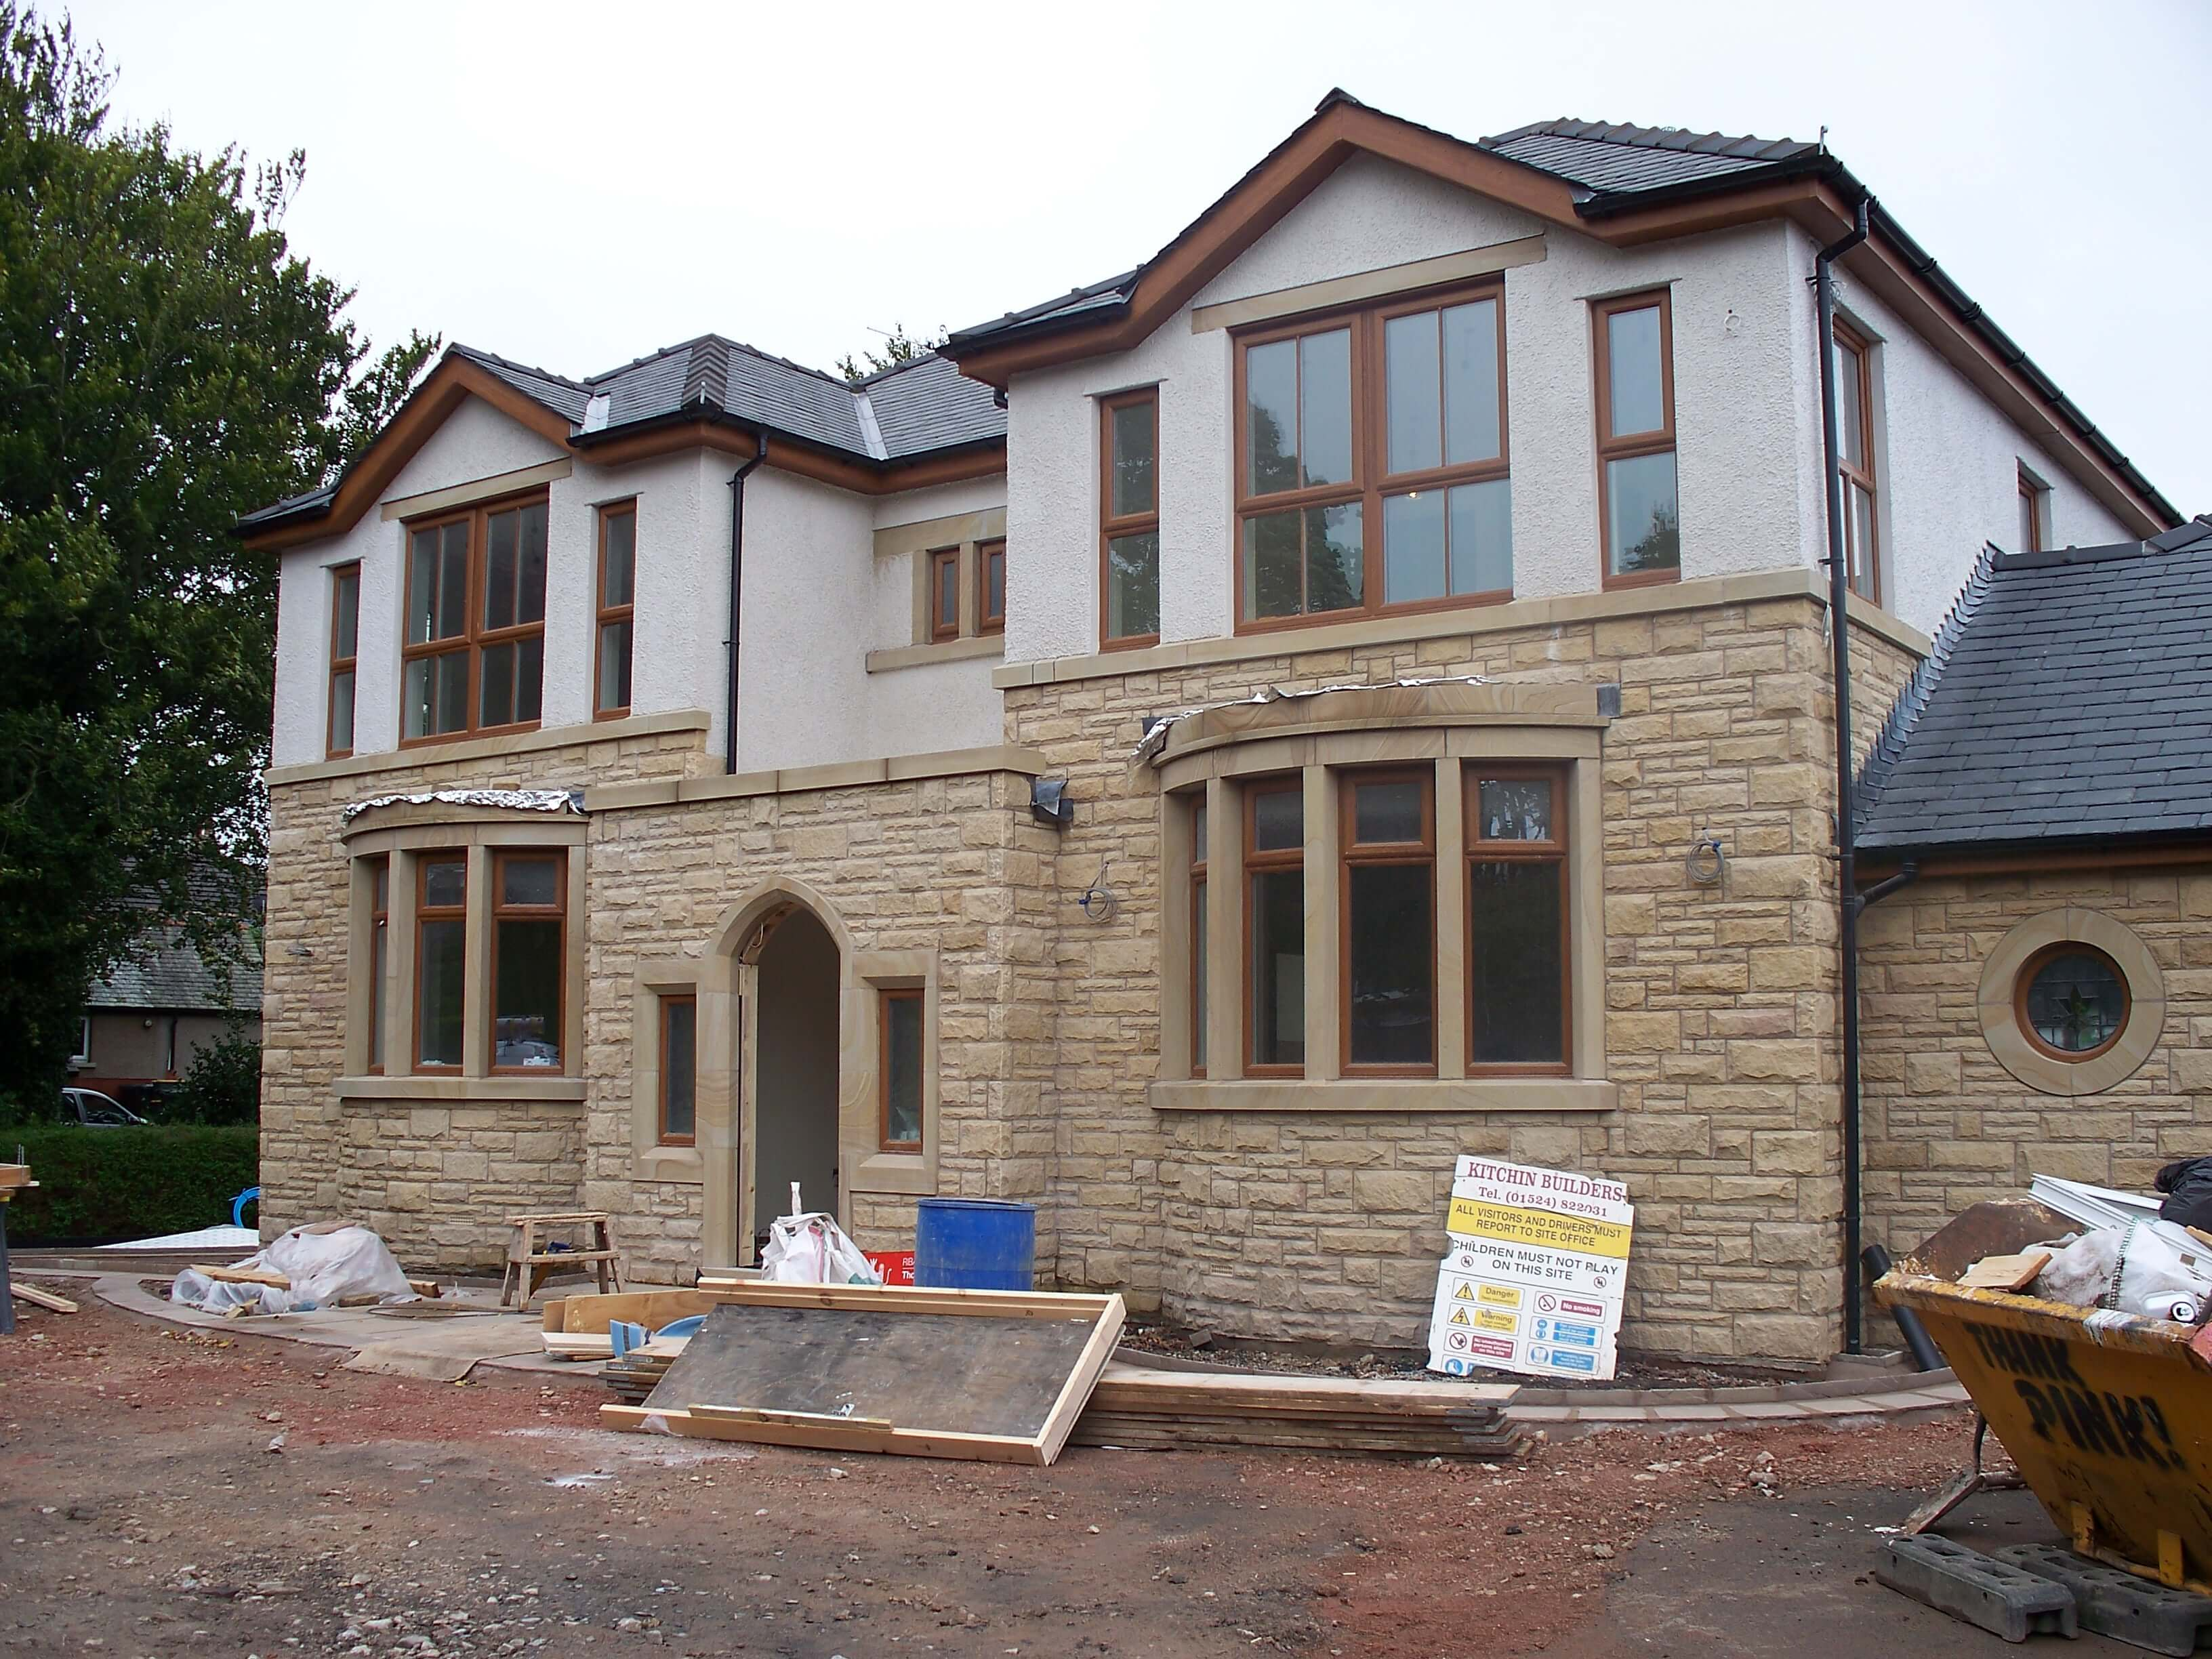 Bespoke Stone For A Bespoke Home